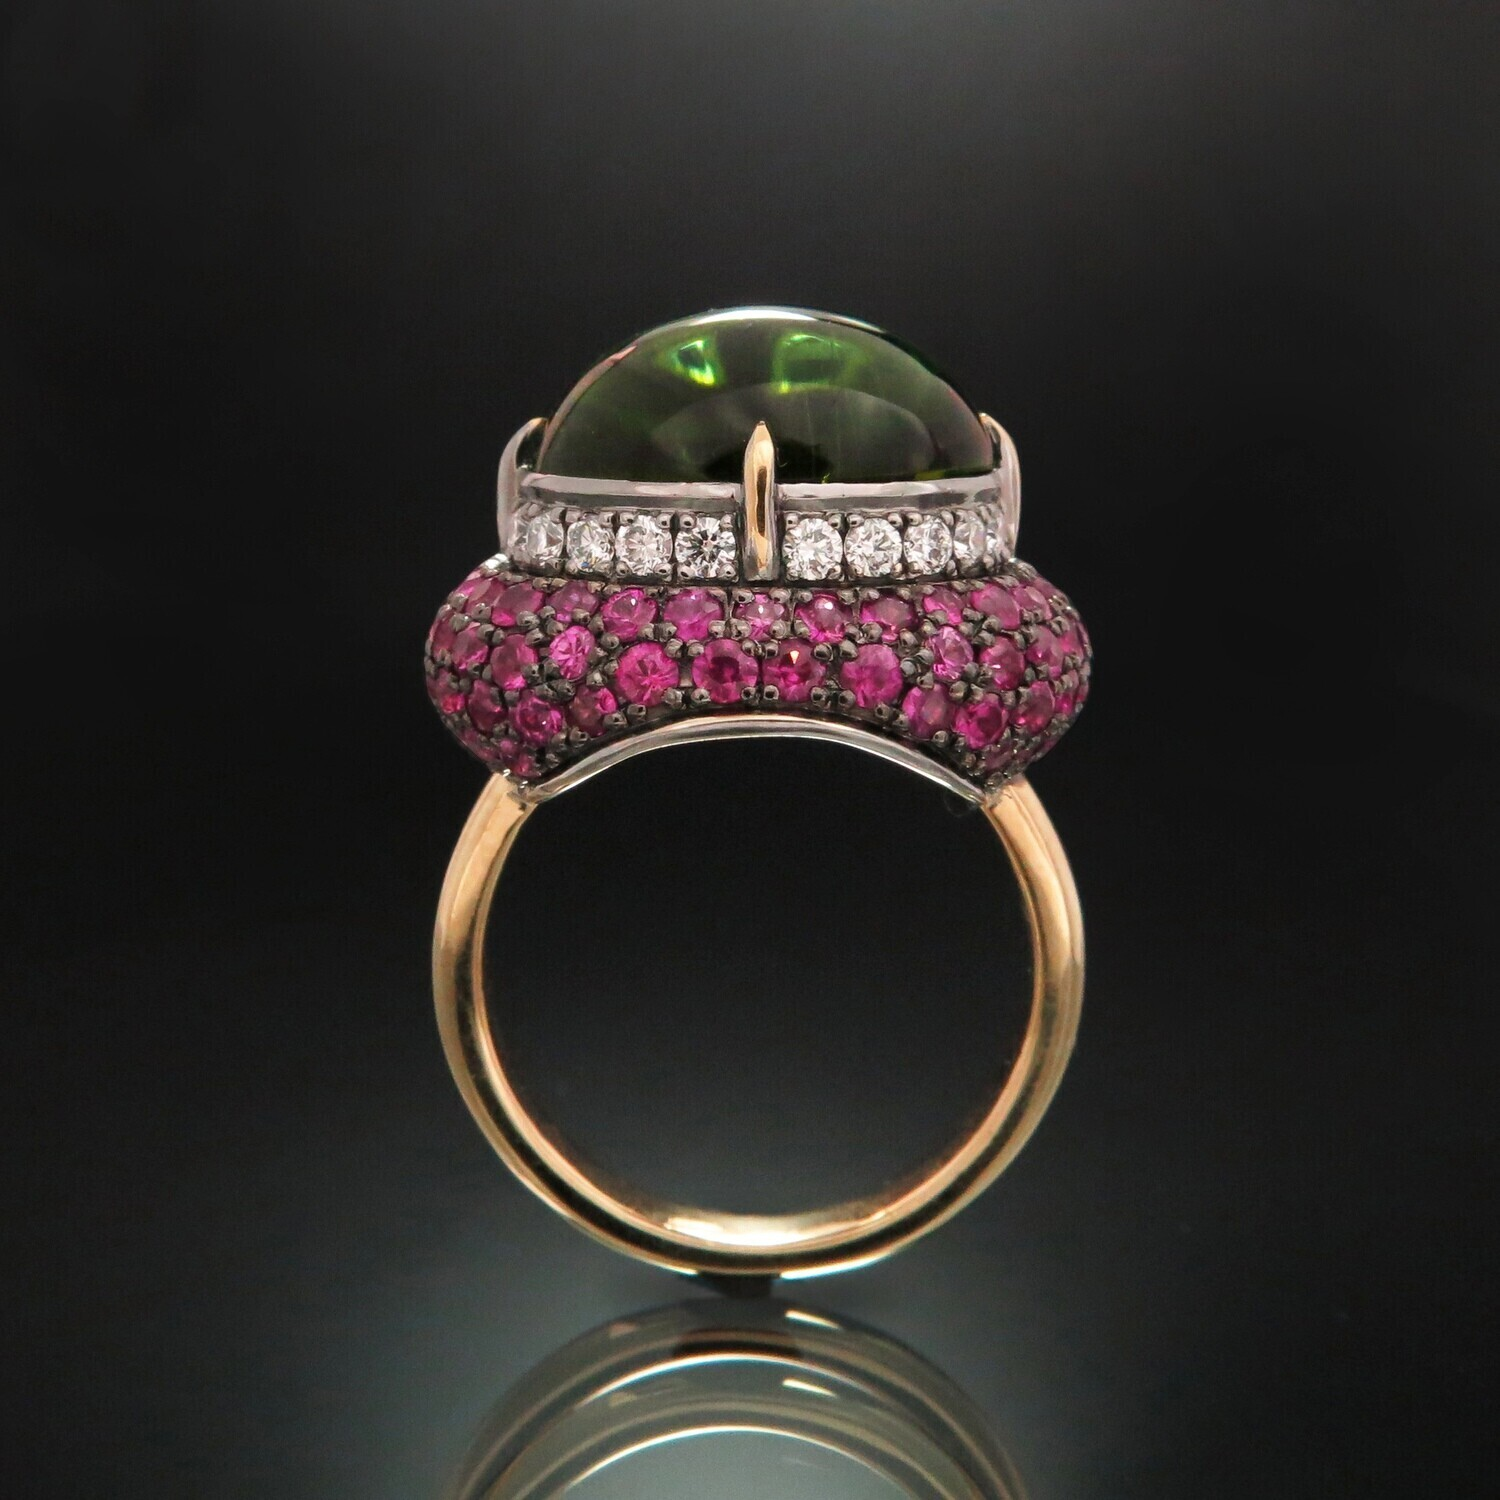 14K Gold Ring with Tourmaline, Diamonds and Sapphires, VH008